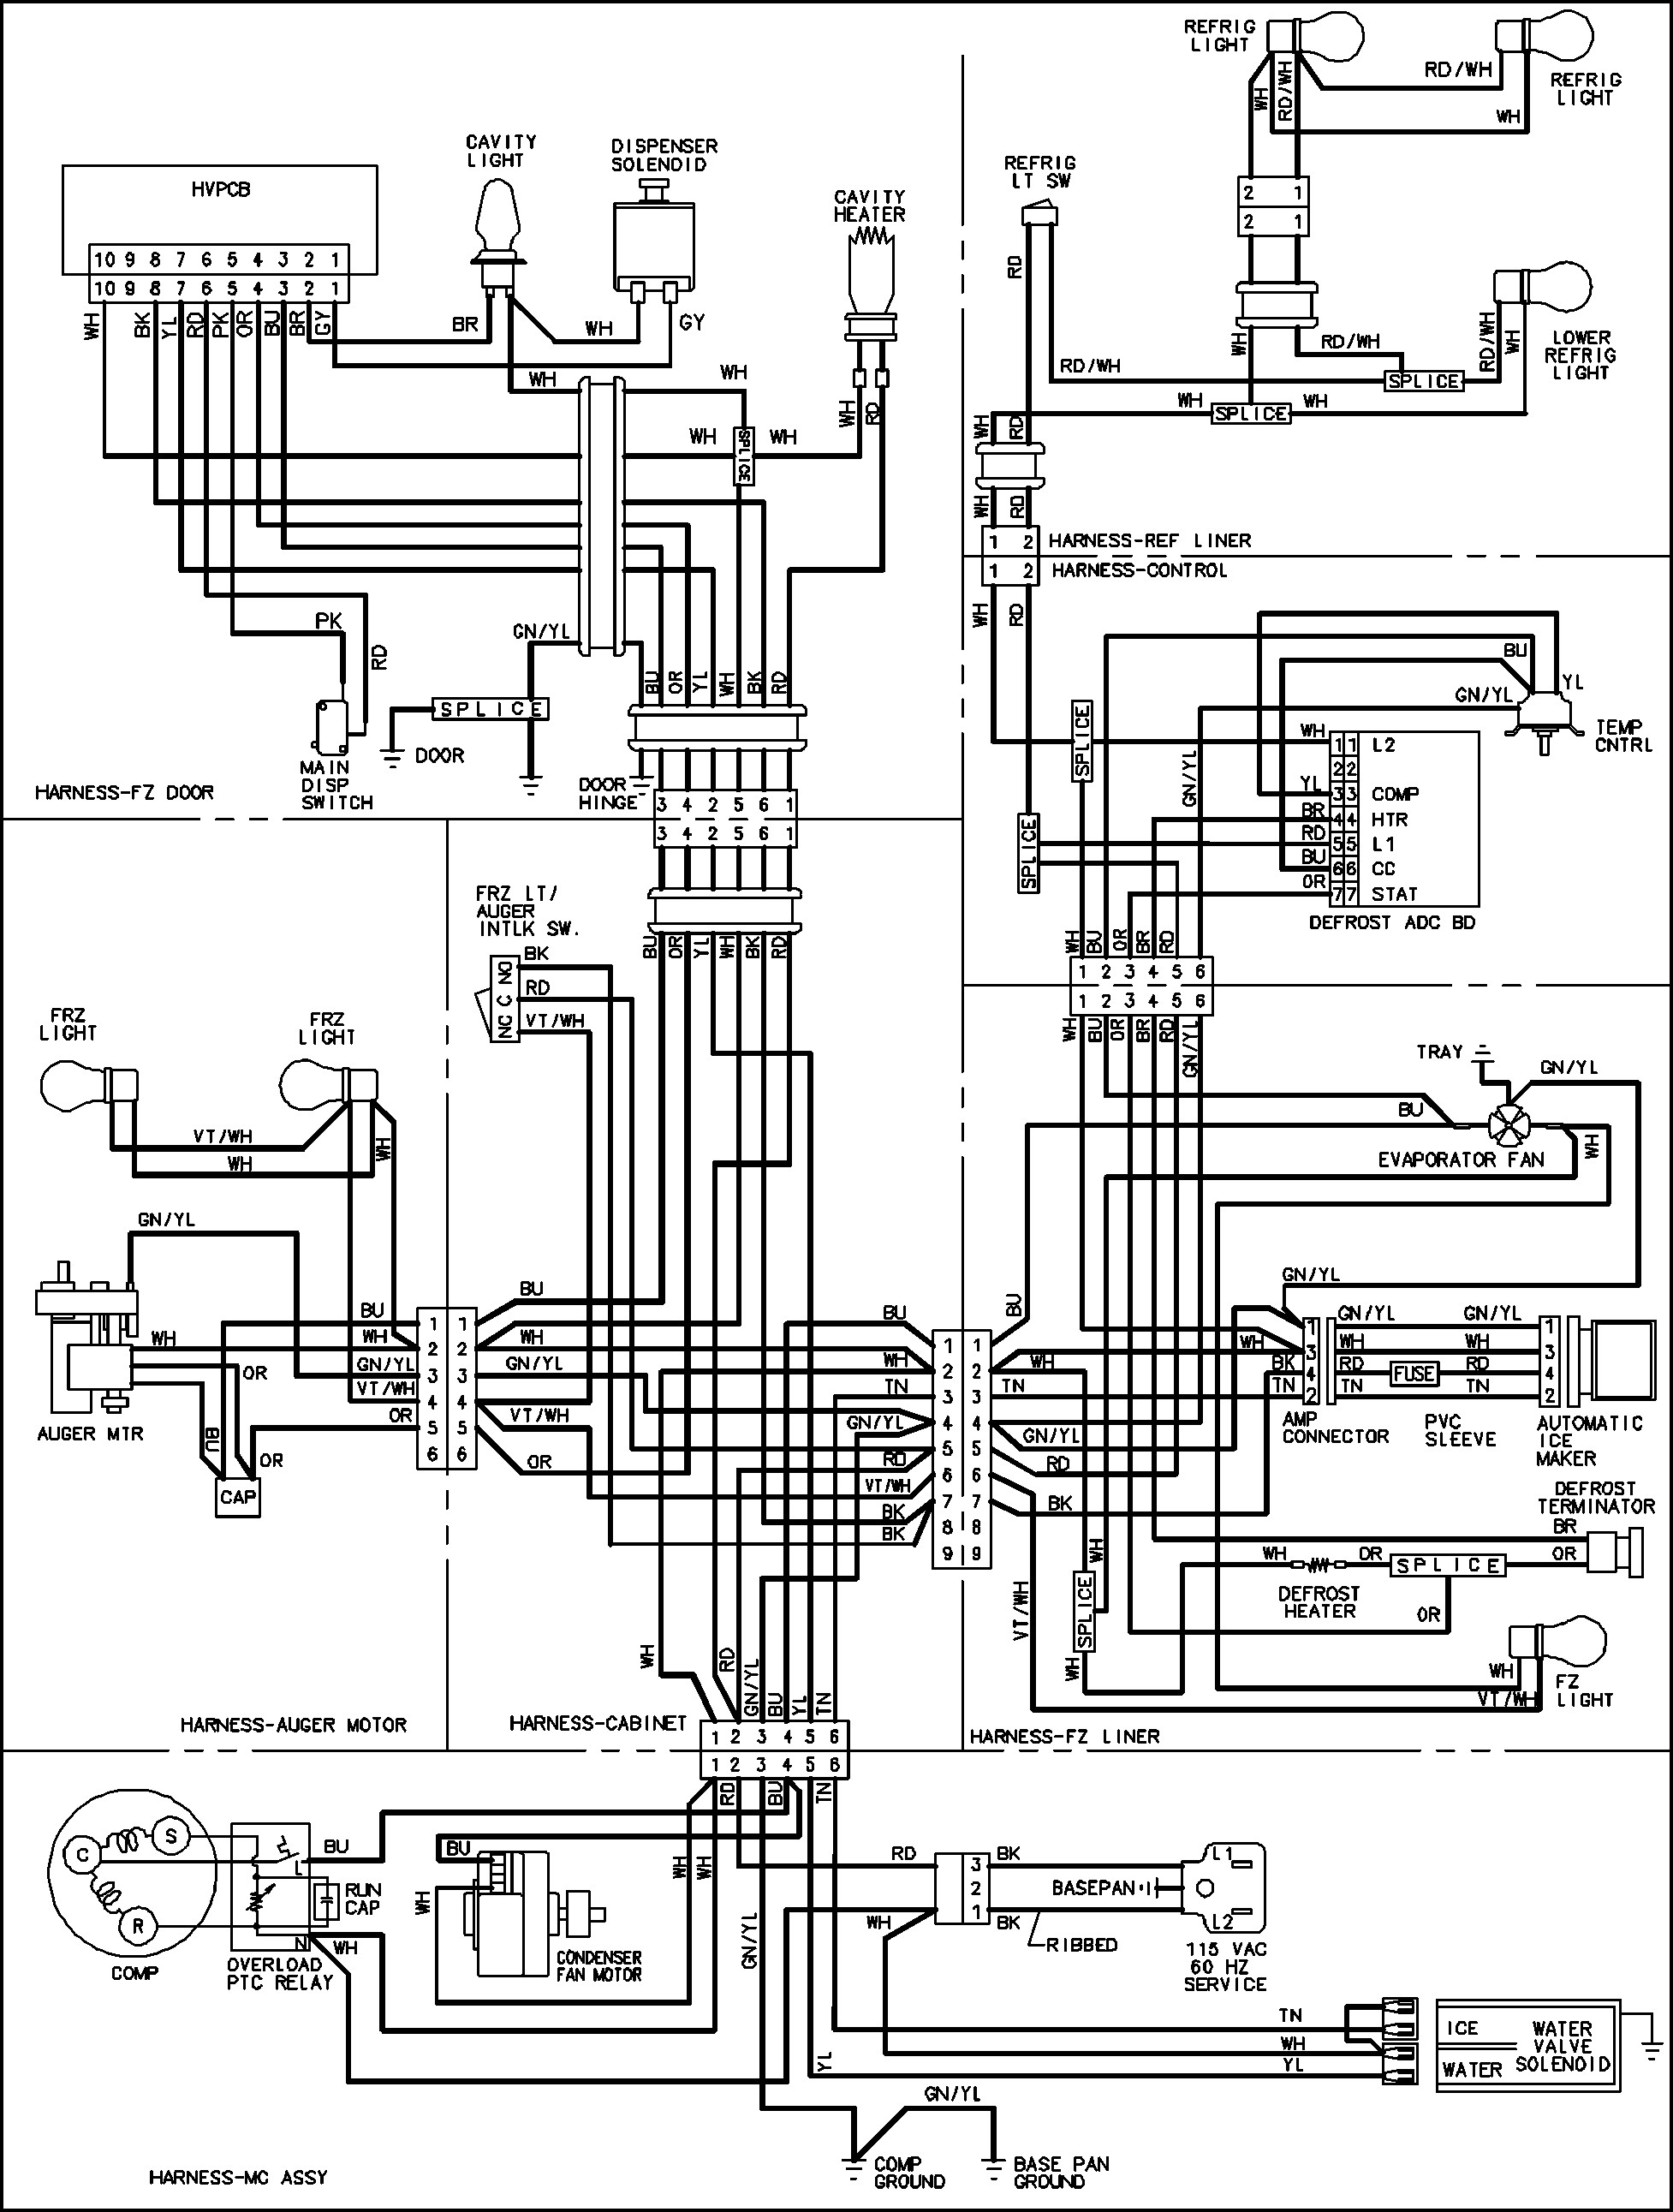 Wiring Diagram Maytag Dryer De482